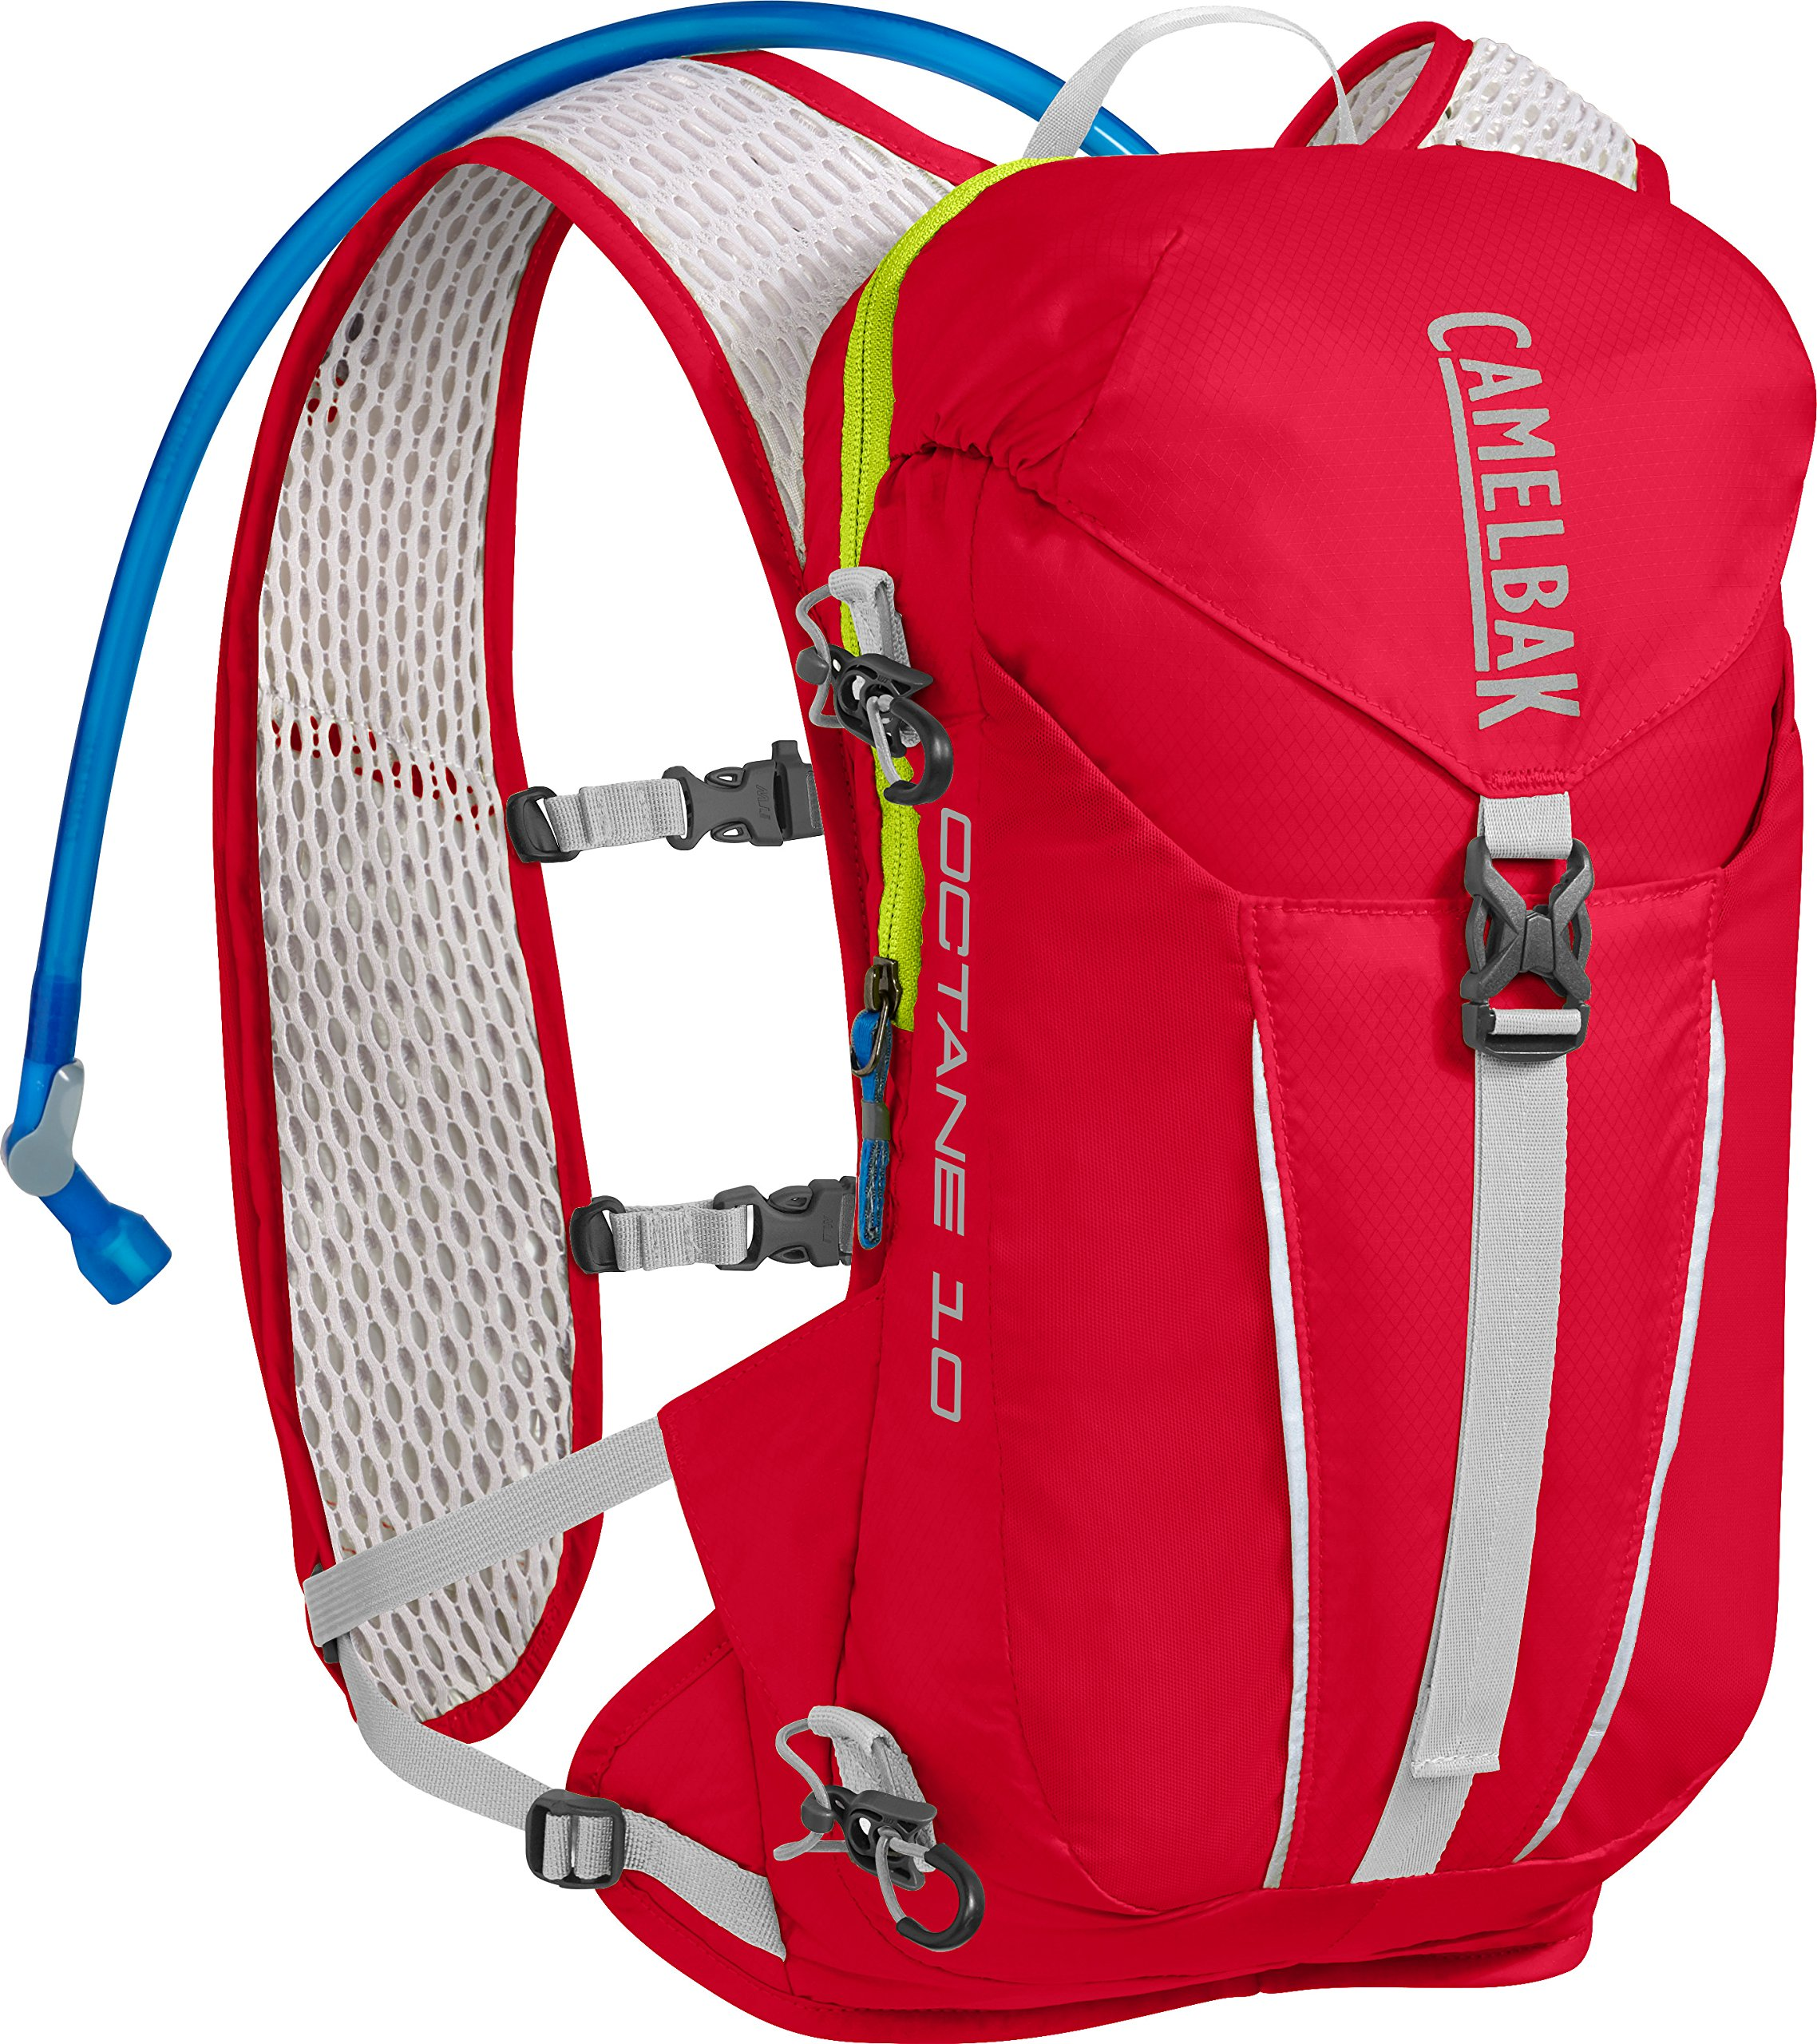 CamelBak Octane 10 70 oz Hydration Pack, Crimson Red/Lime Punch